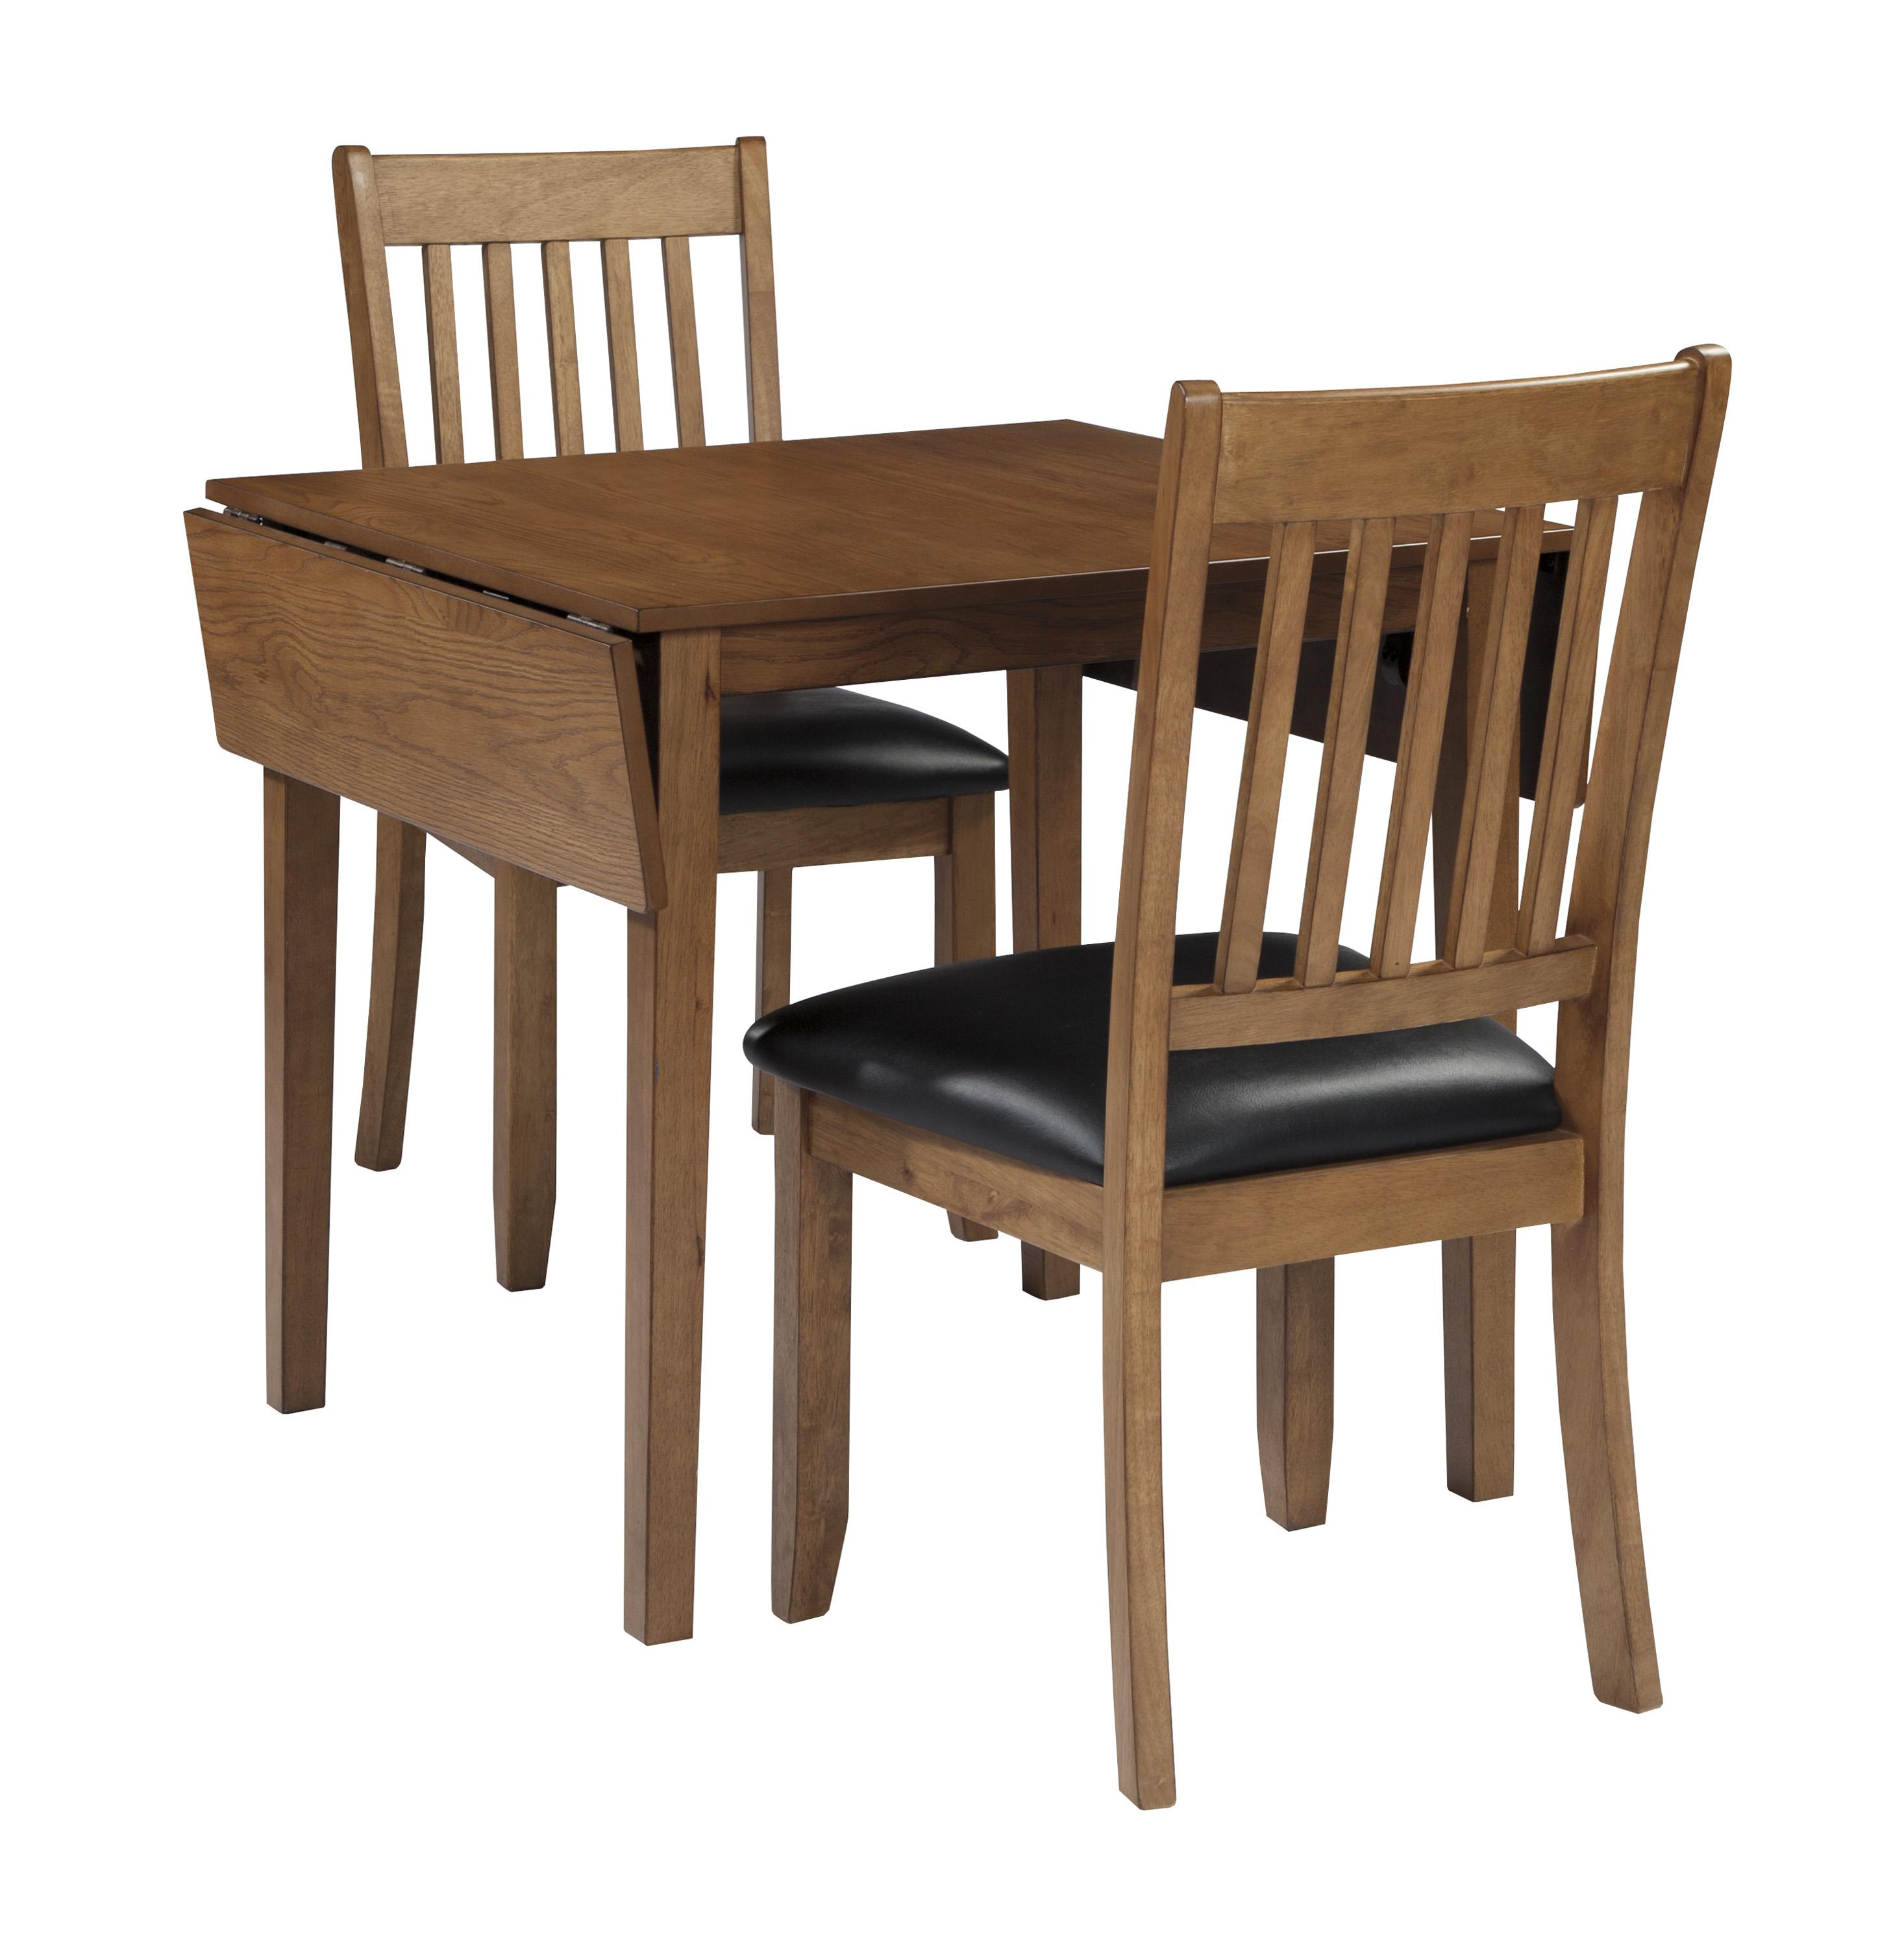 Signature Design by Ashley Joveen 3-Piece Dining Table and Chair Set - Item Number: D278-15+2x01